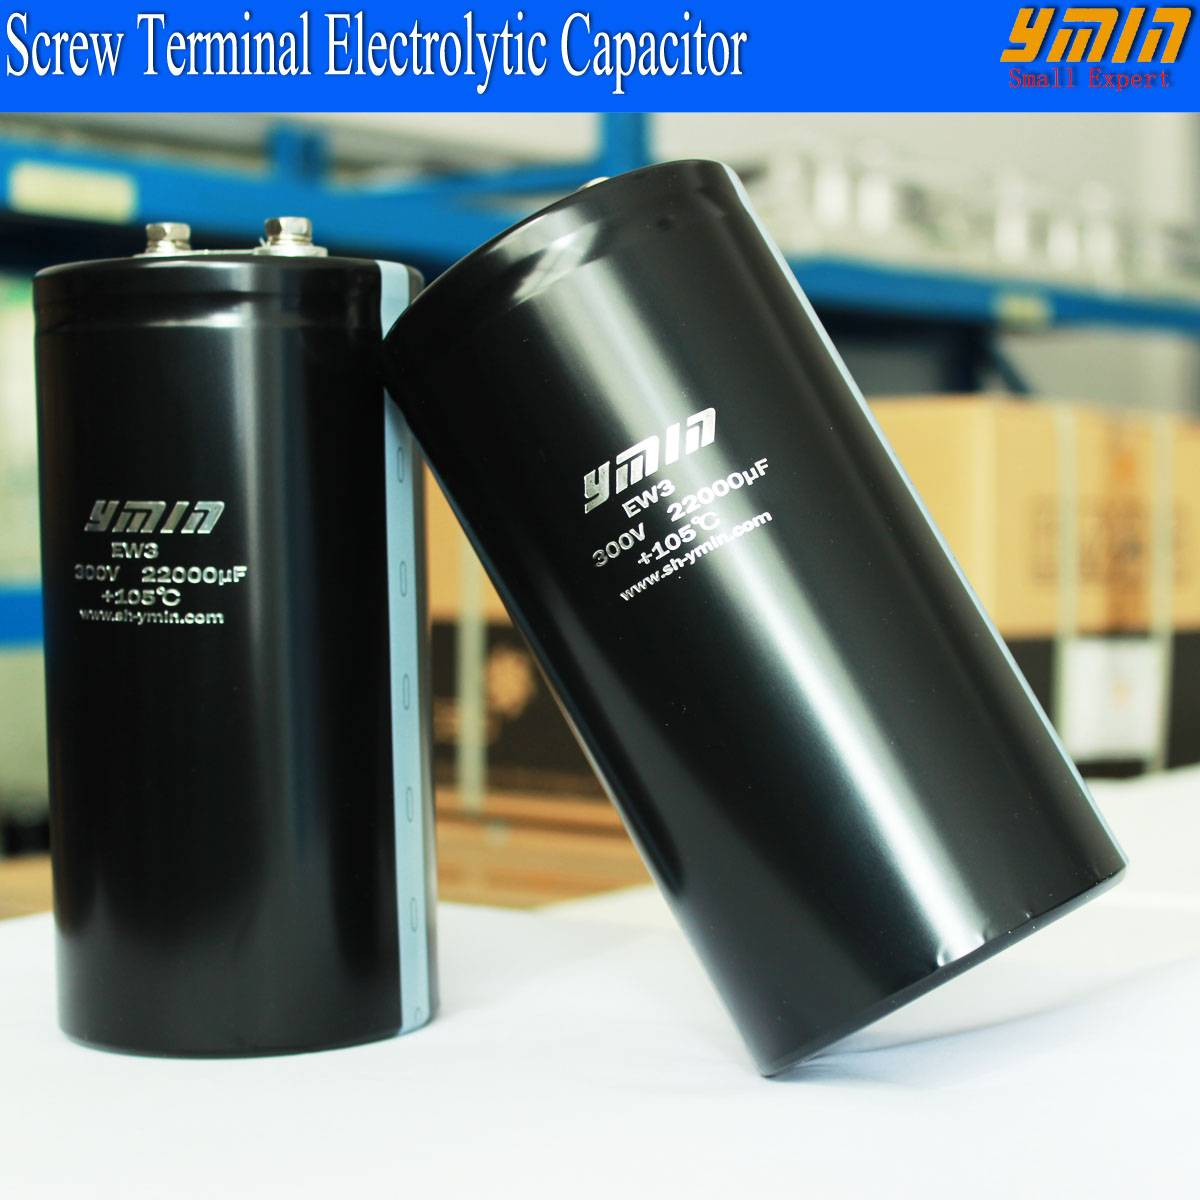 Industrial Capacitor Screw Mounted Terminal Electrolytic Capacitor for Renewable Energy Vehicle